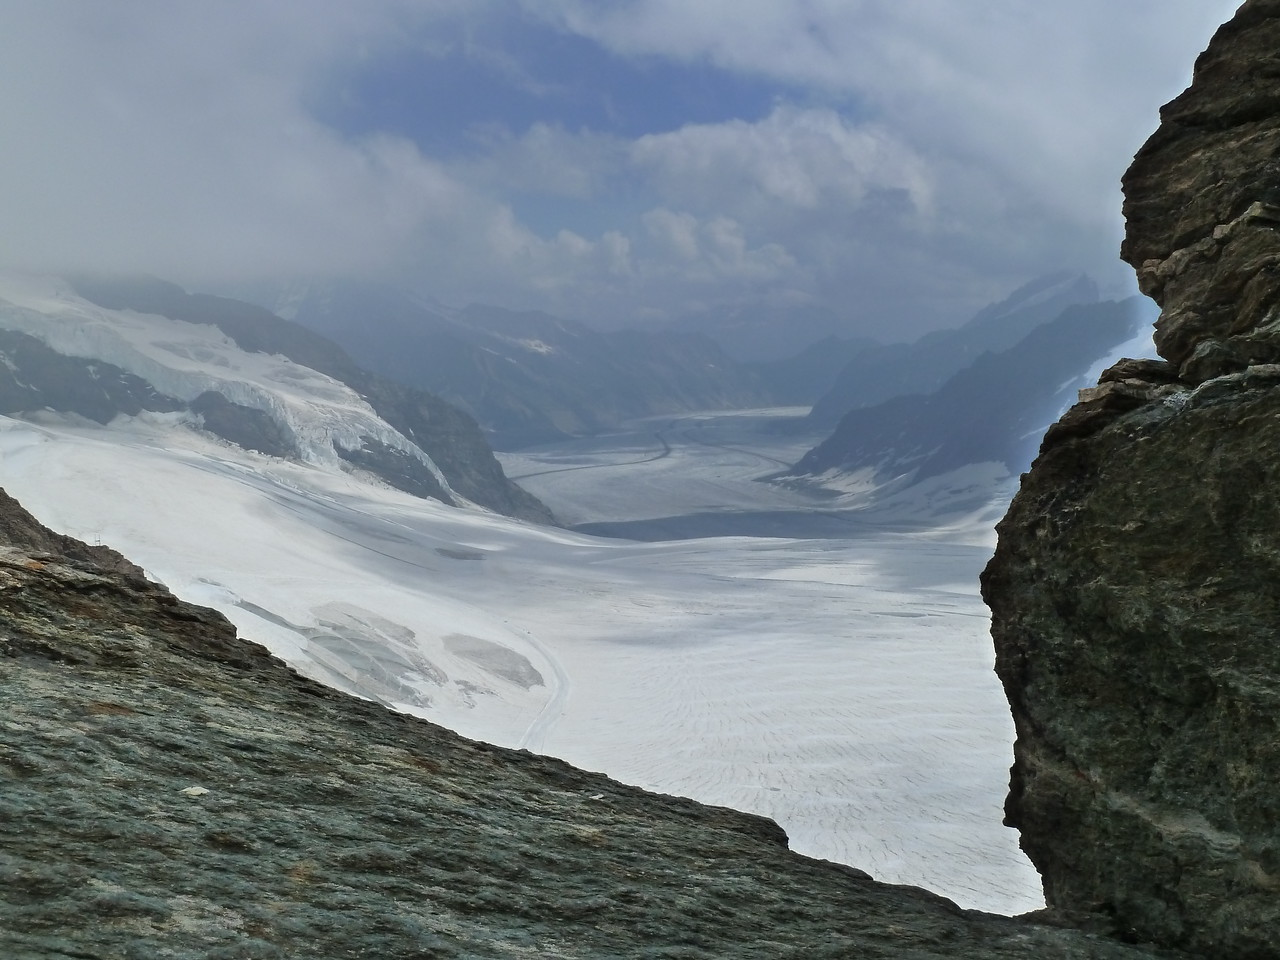 The view across glaciers from the Jungfraujoch at 3400 meters (>11,000 ft).